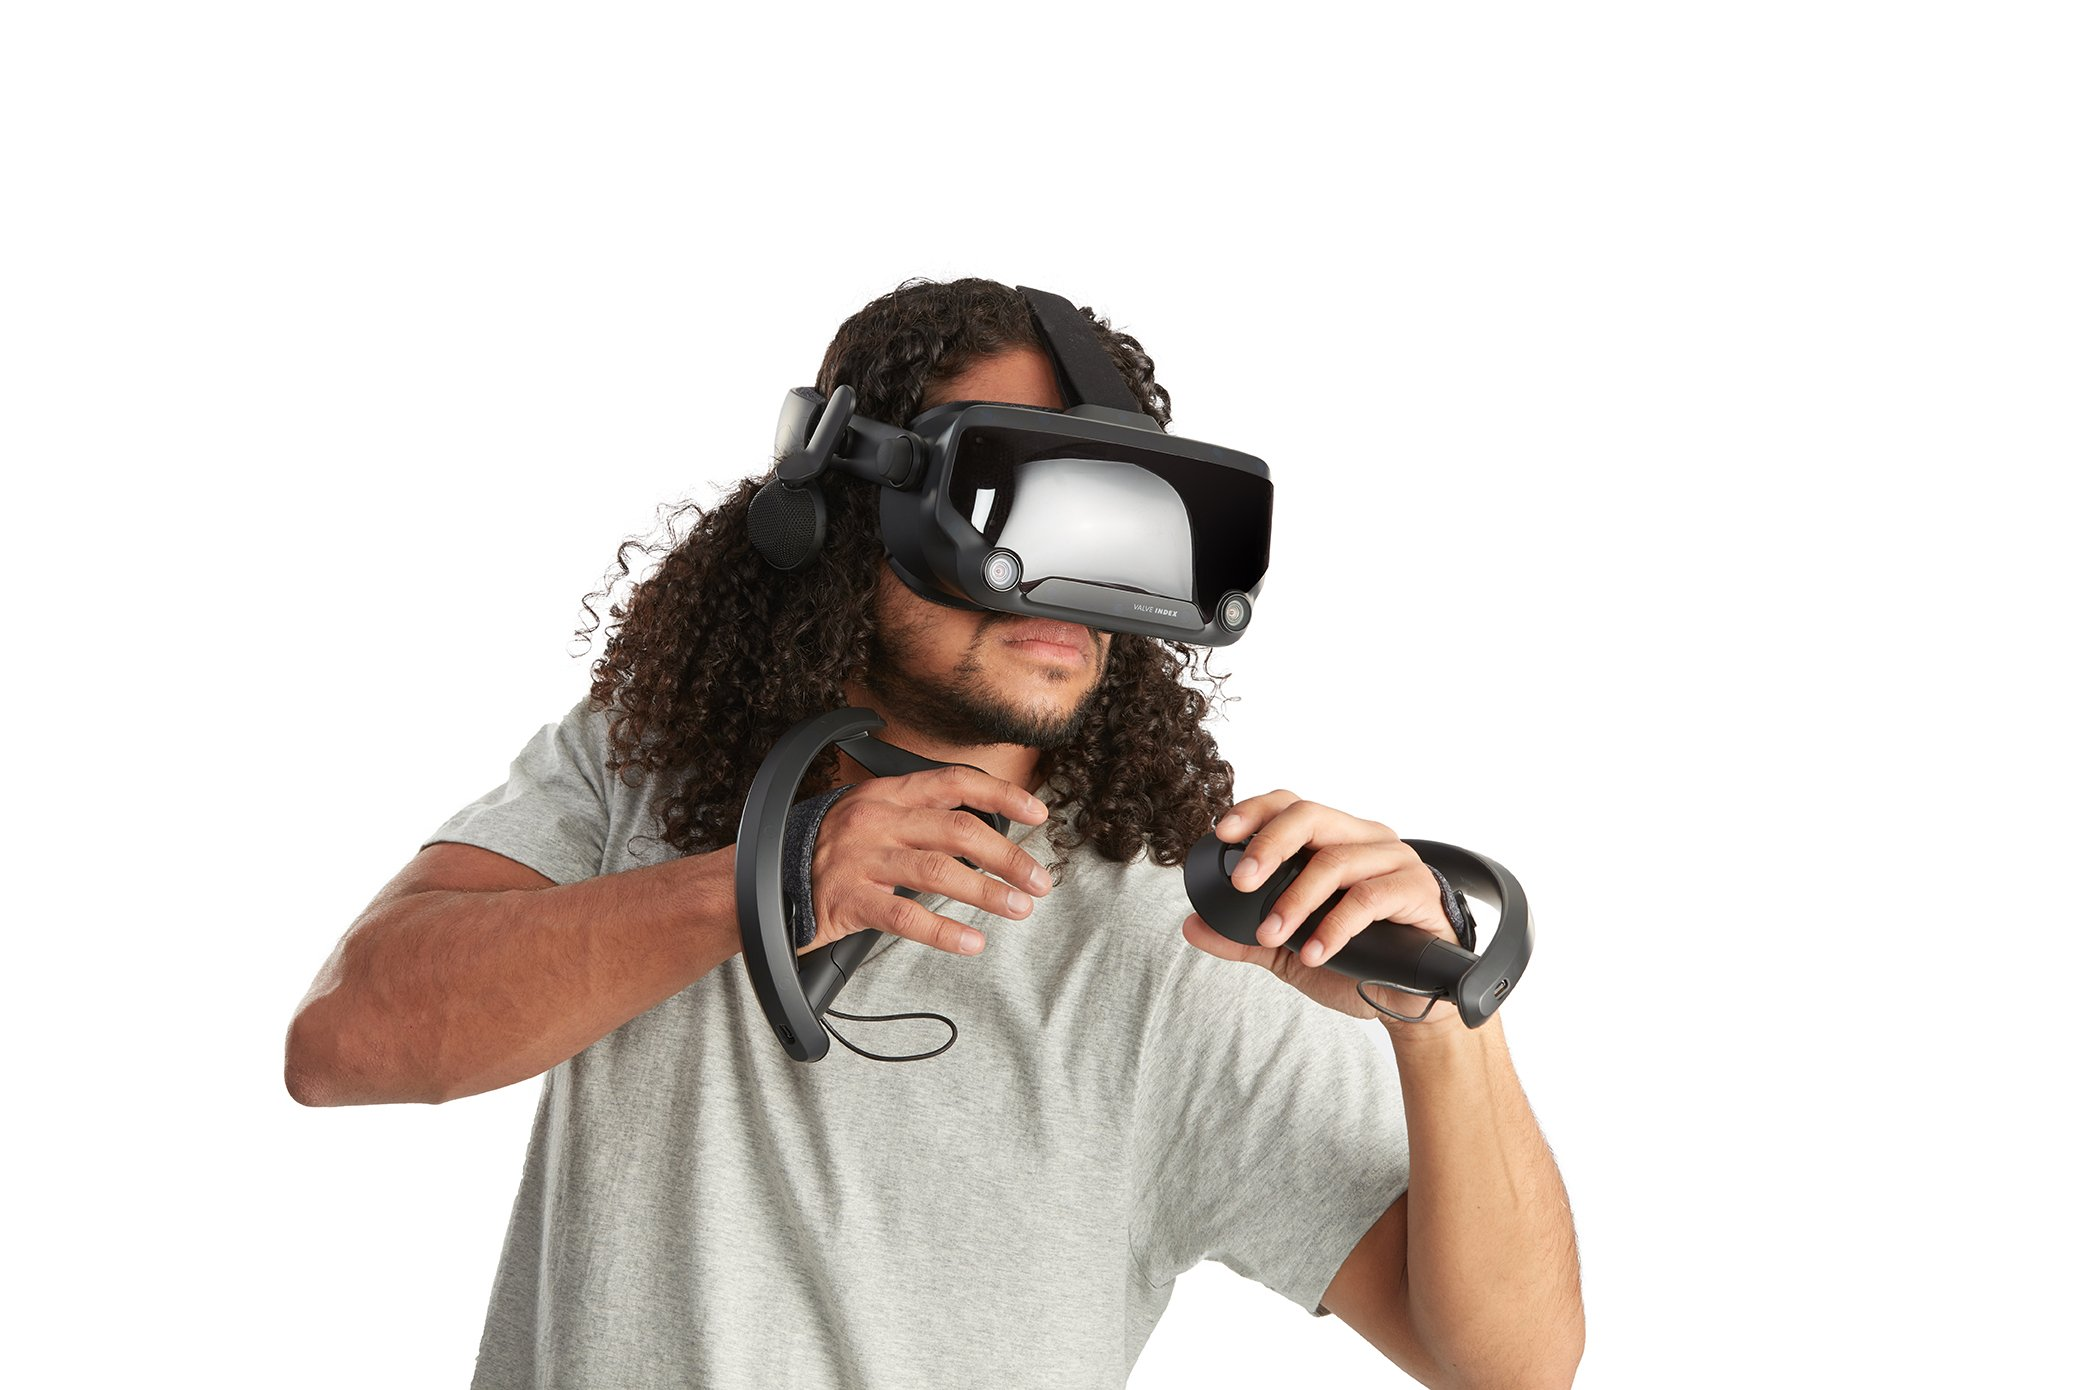 Valve Index Knuckles controllers will allow for some of the best hand and finger presence ever experienced in VR.